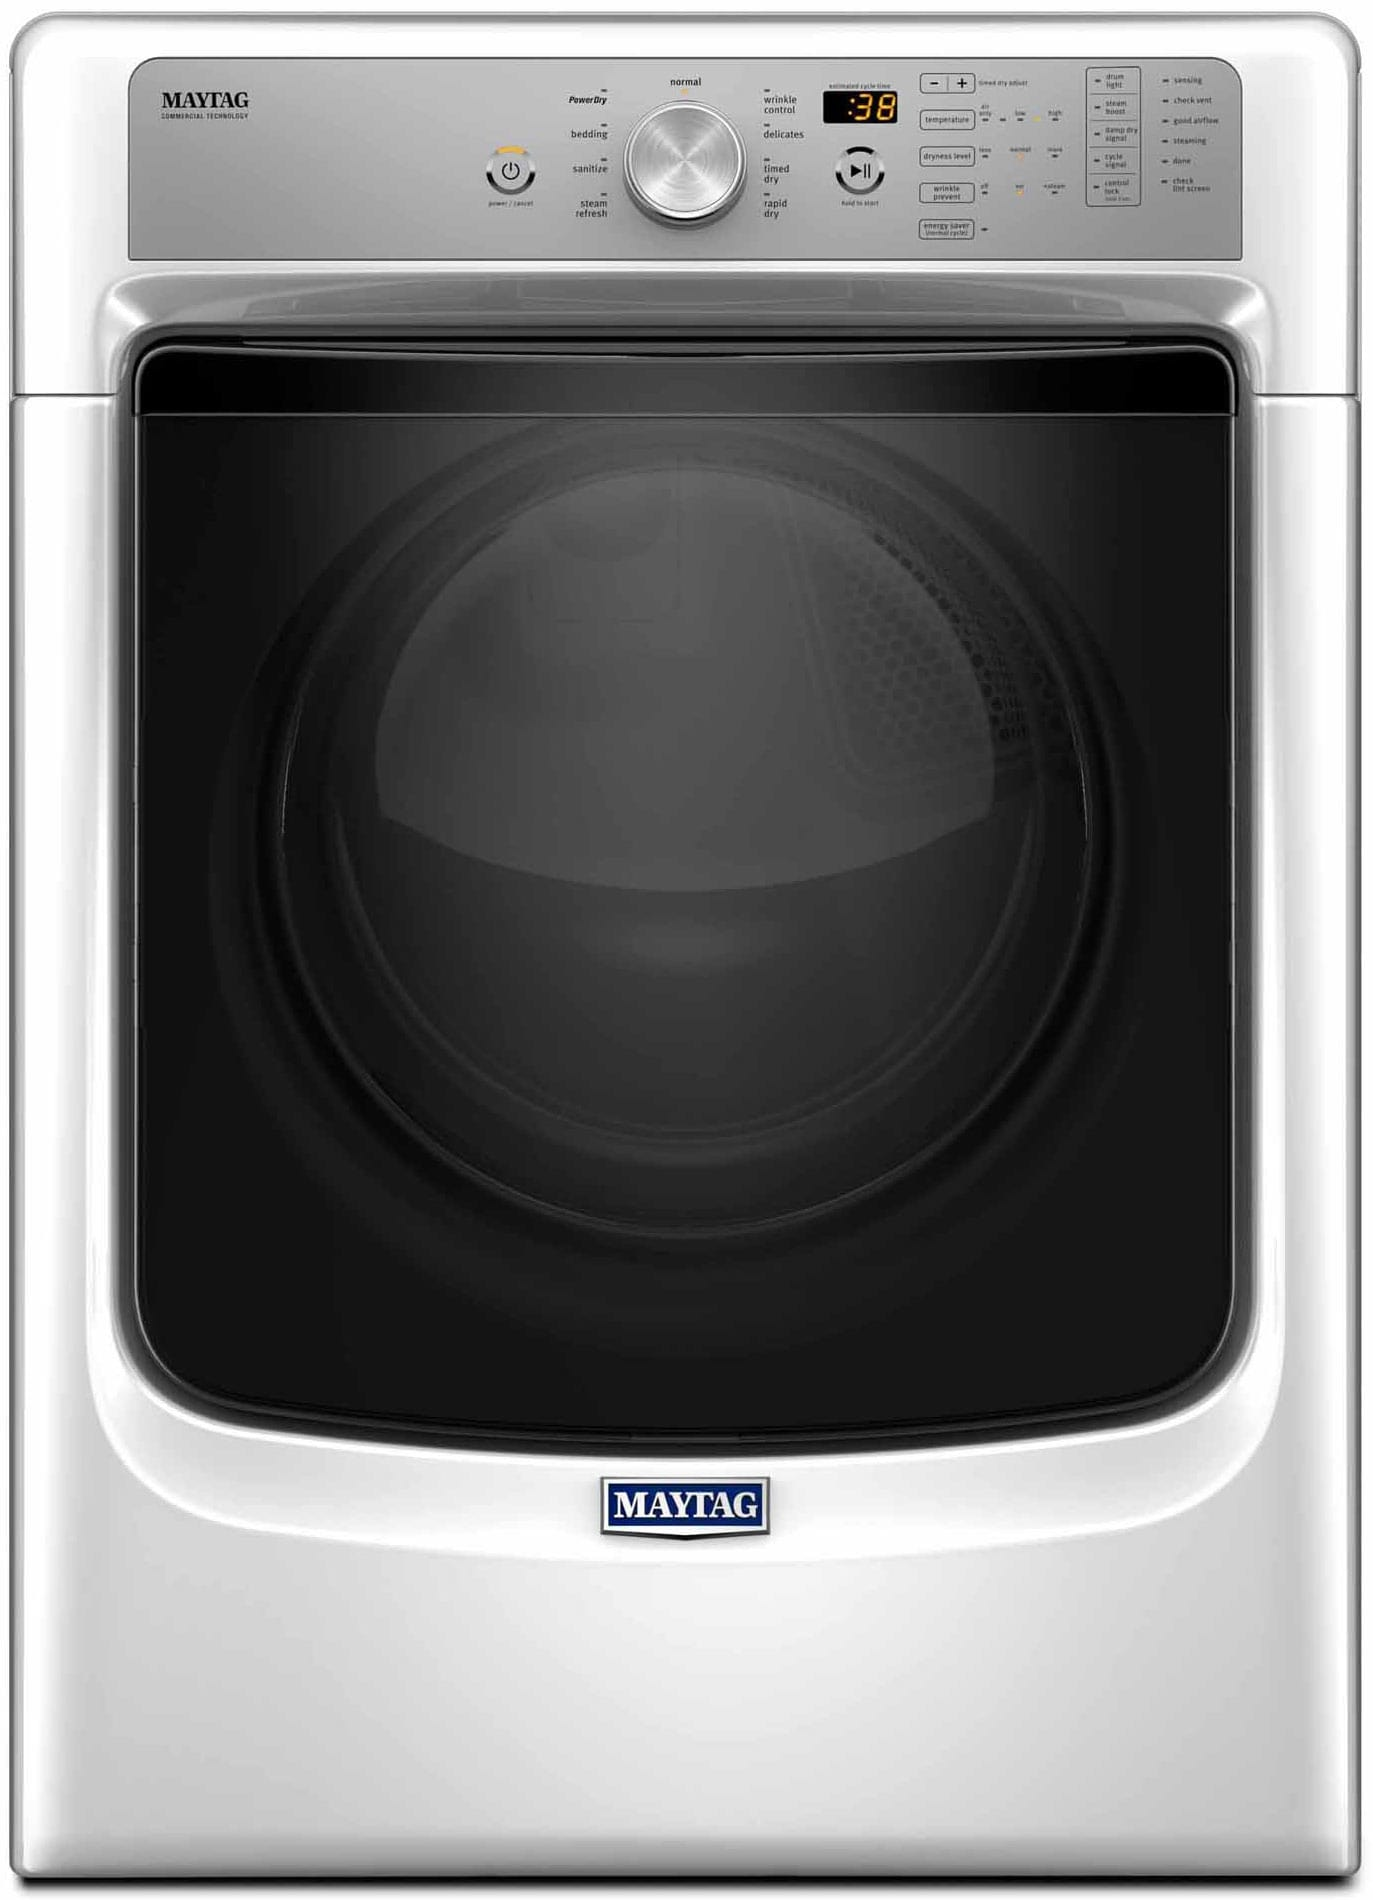 Maytag's traditional 5500FW white model is the cheaper option for both gas and electric.